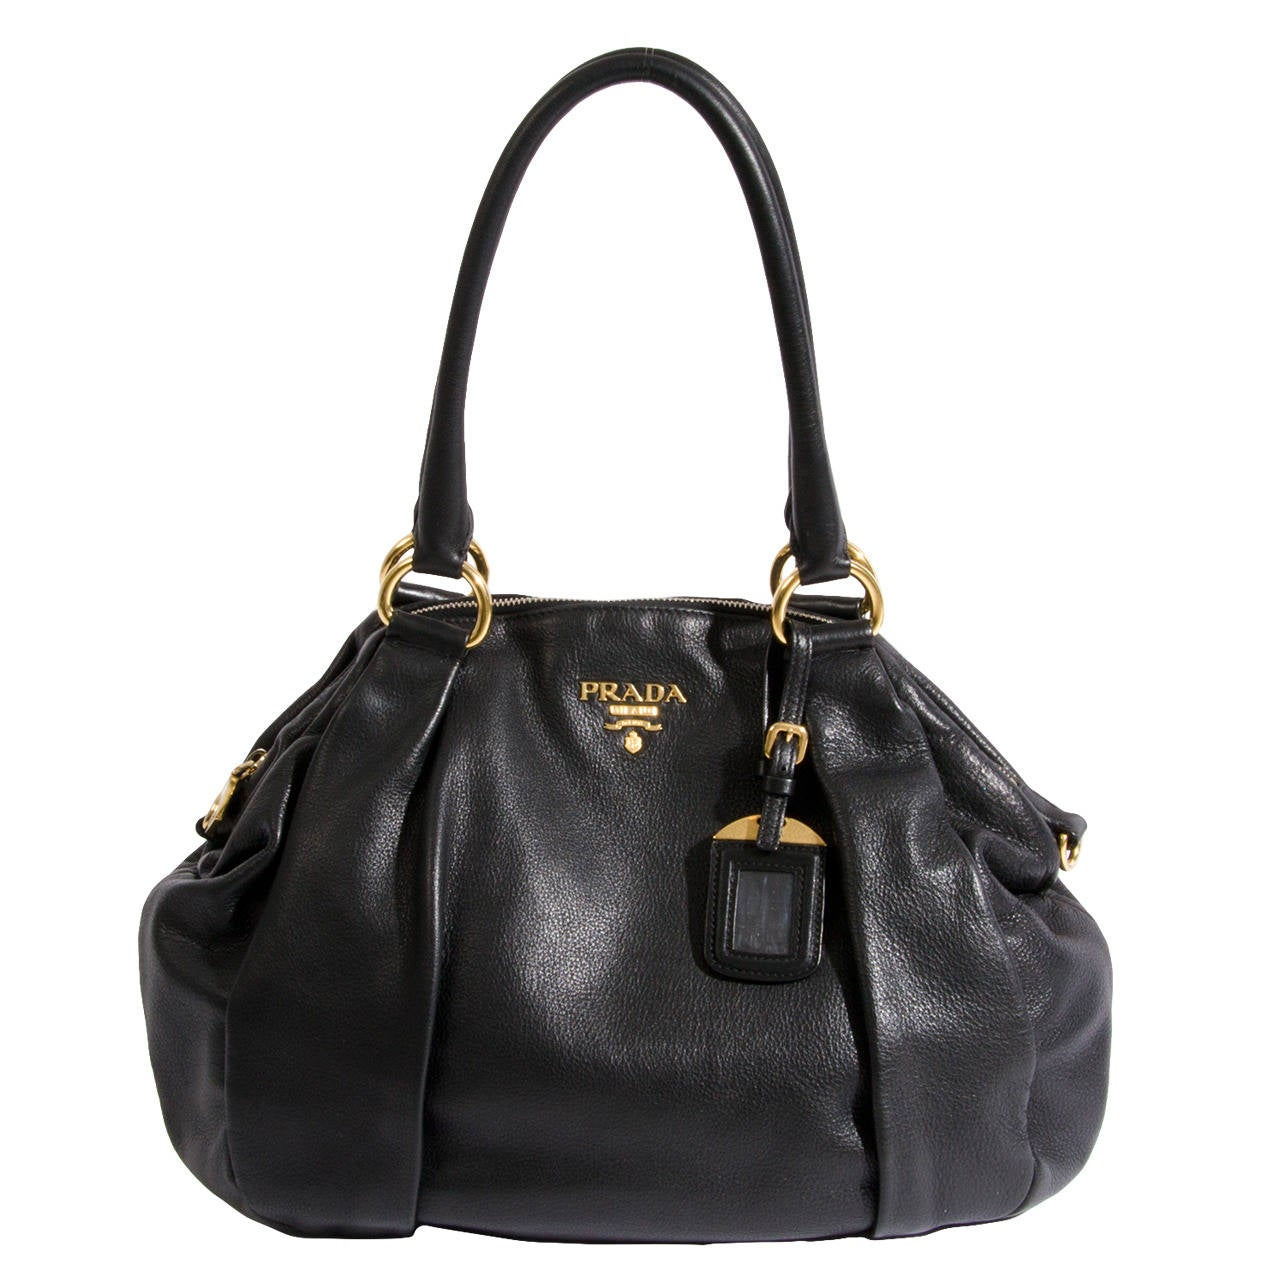 Get Brown Leather Handbags and Black Leather Handbags at Macy's. Macy's Presents: The Edit - A curated mix of fashion and inspiration Check It Out Free Shipping with $75 purchase + Free Store Pickup.